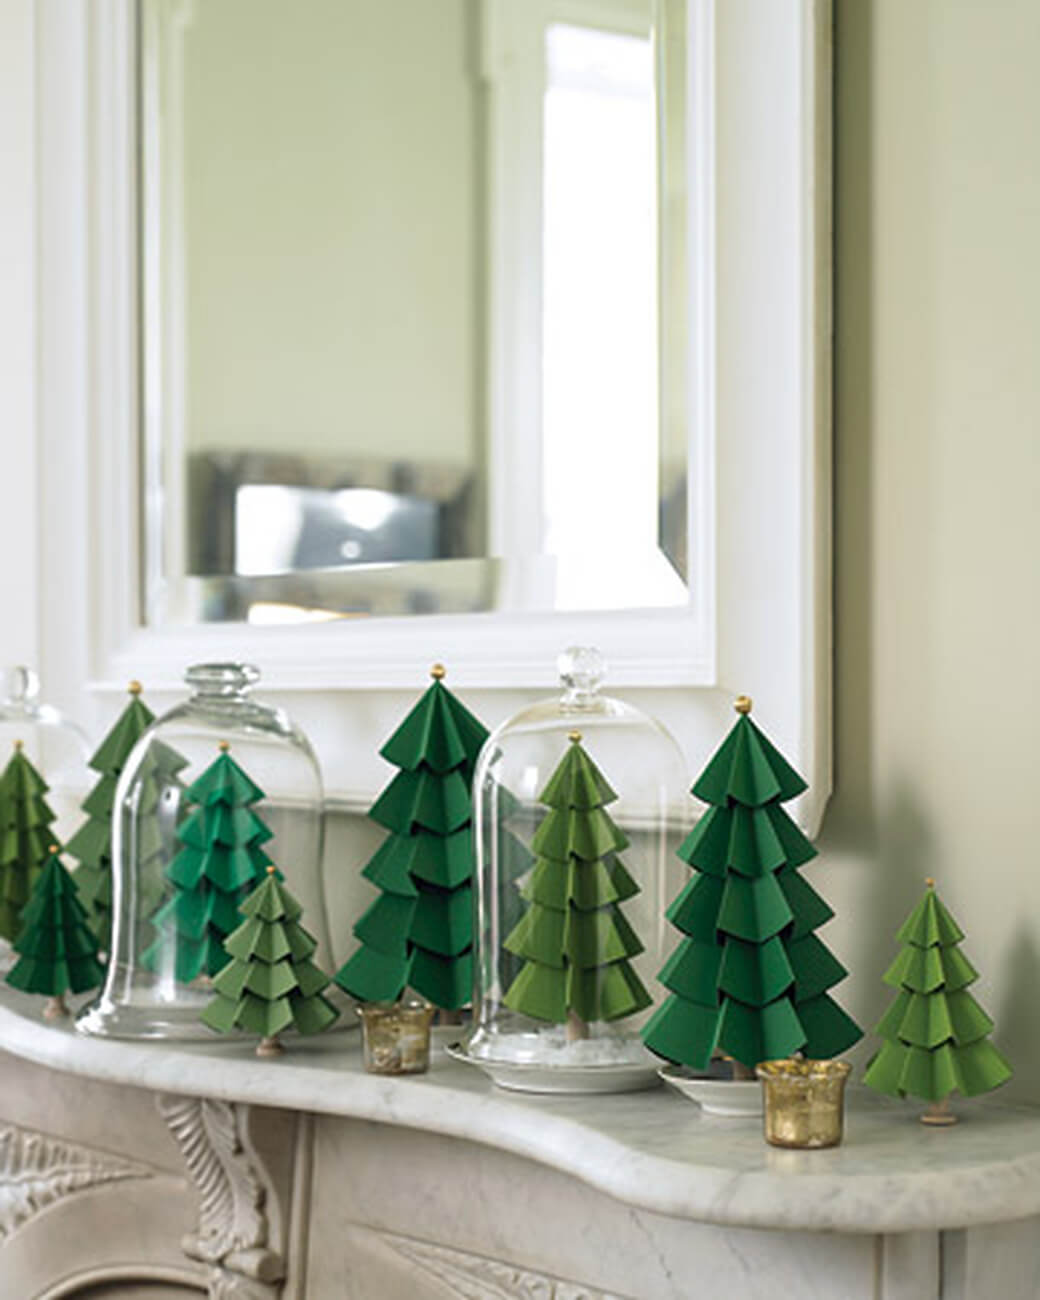 These cute paper Christmas trees are super easy to make!